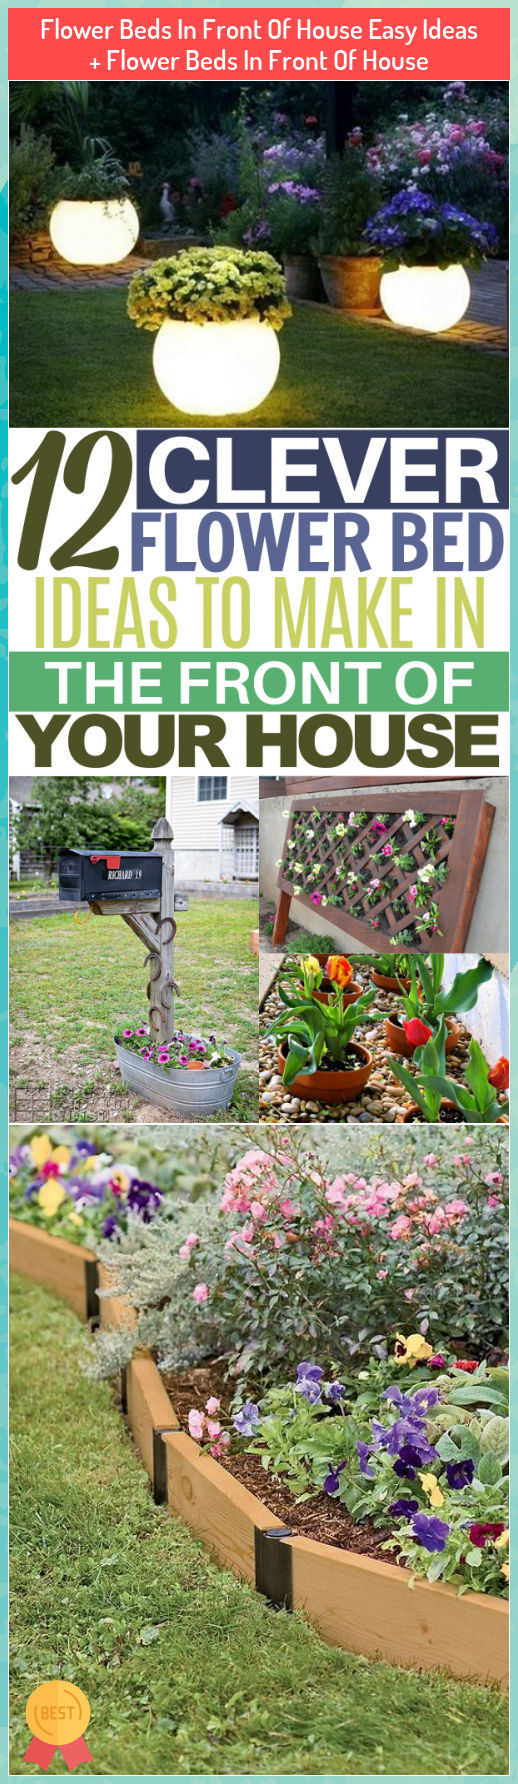 Photo of Flower Beds In Front Of House Easy Ideas + Flower Beds In Front Of House – My Blog – Flower Beds 2020 Flower Beds 2020